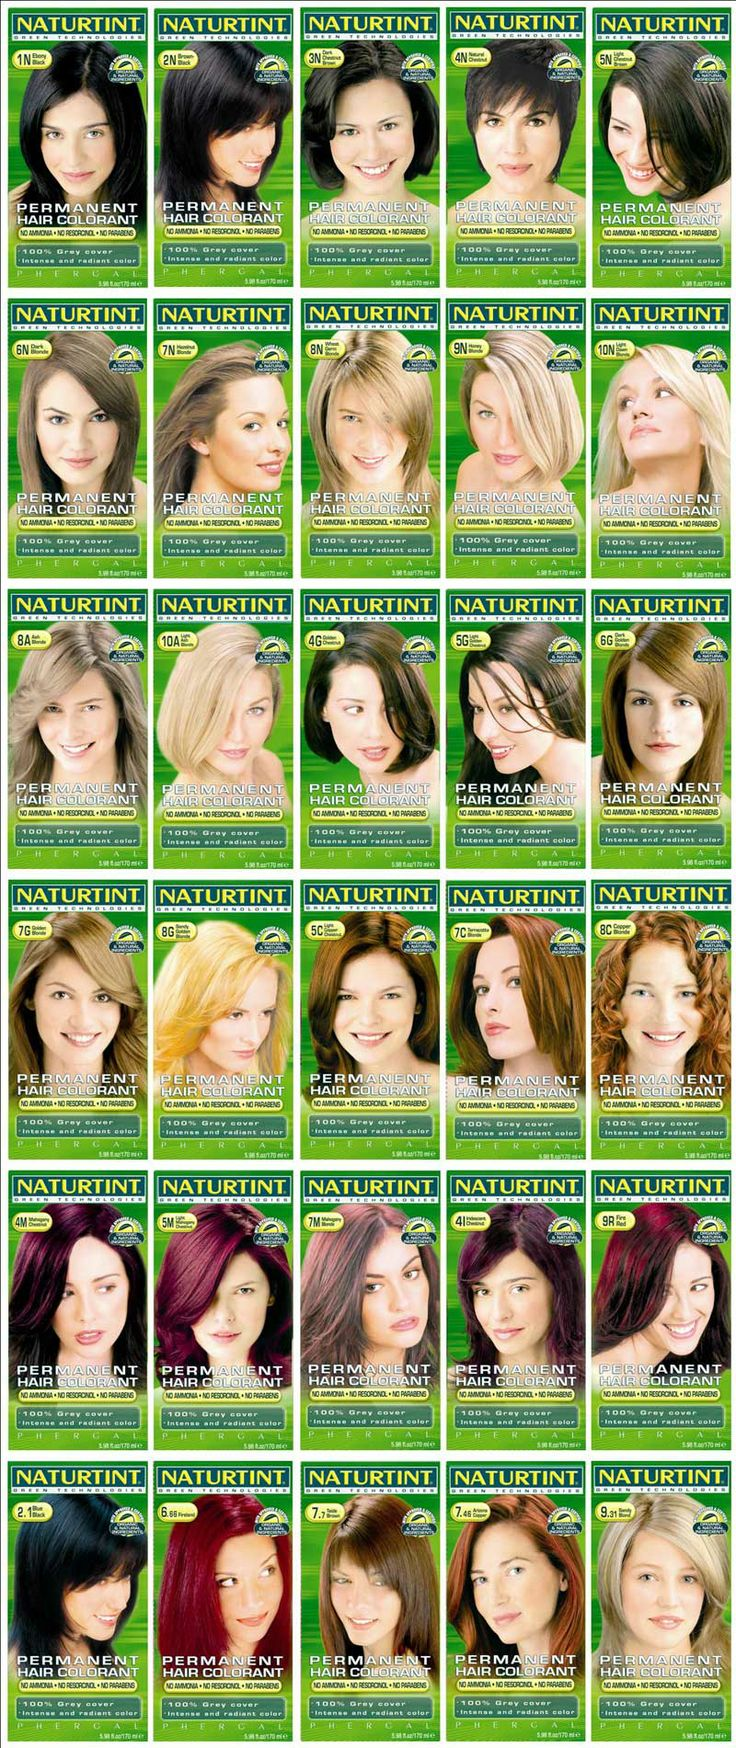 Naturtint Permanent Hair Colourant: colour chart Plant based colorants. I use the 2N and love it!